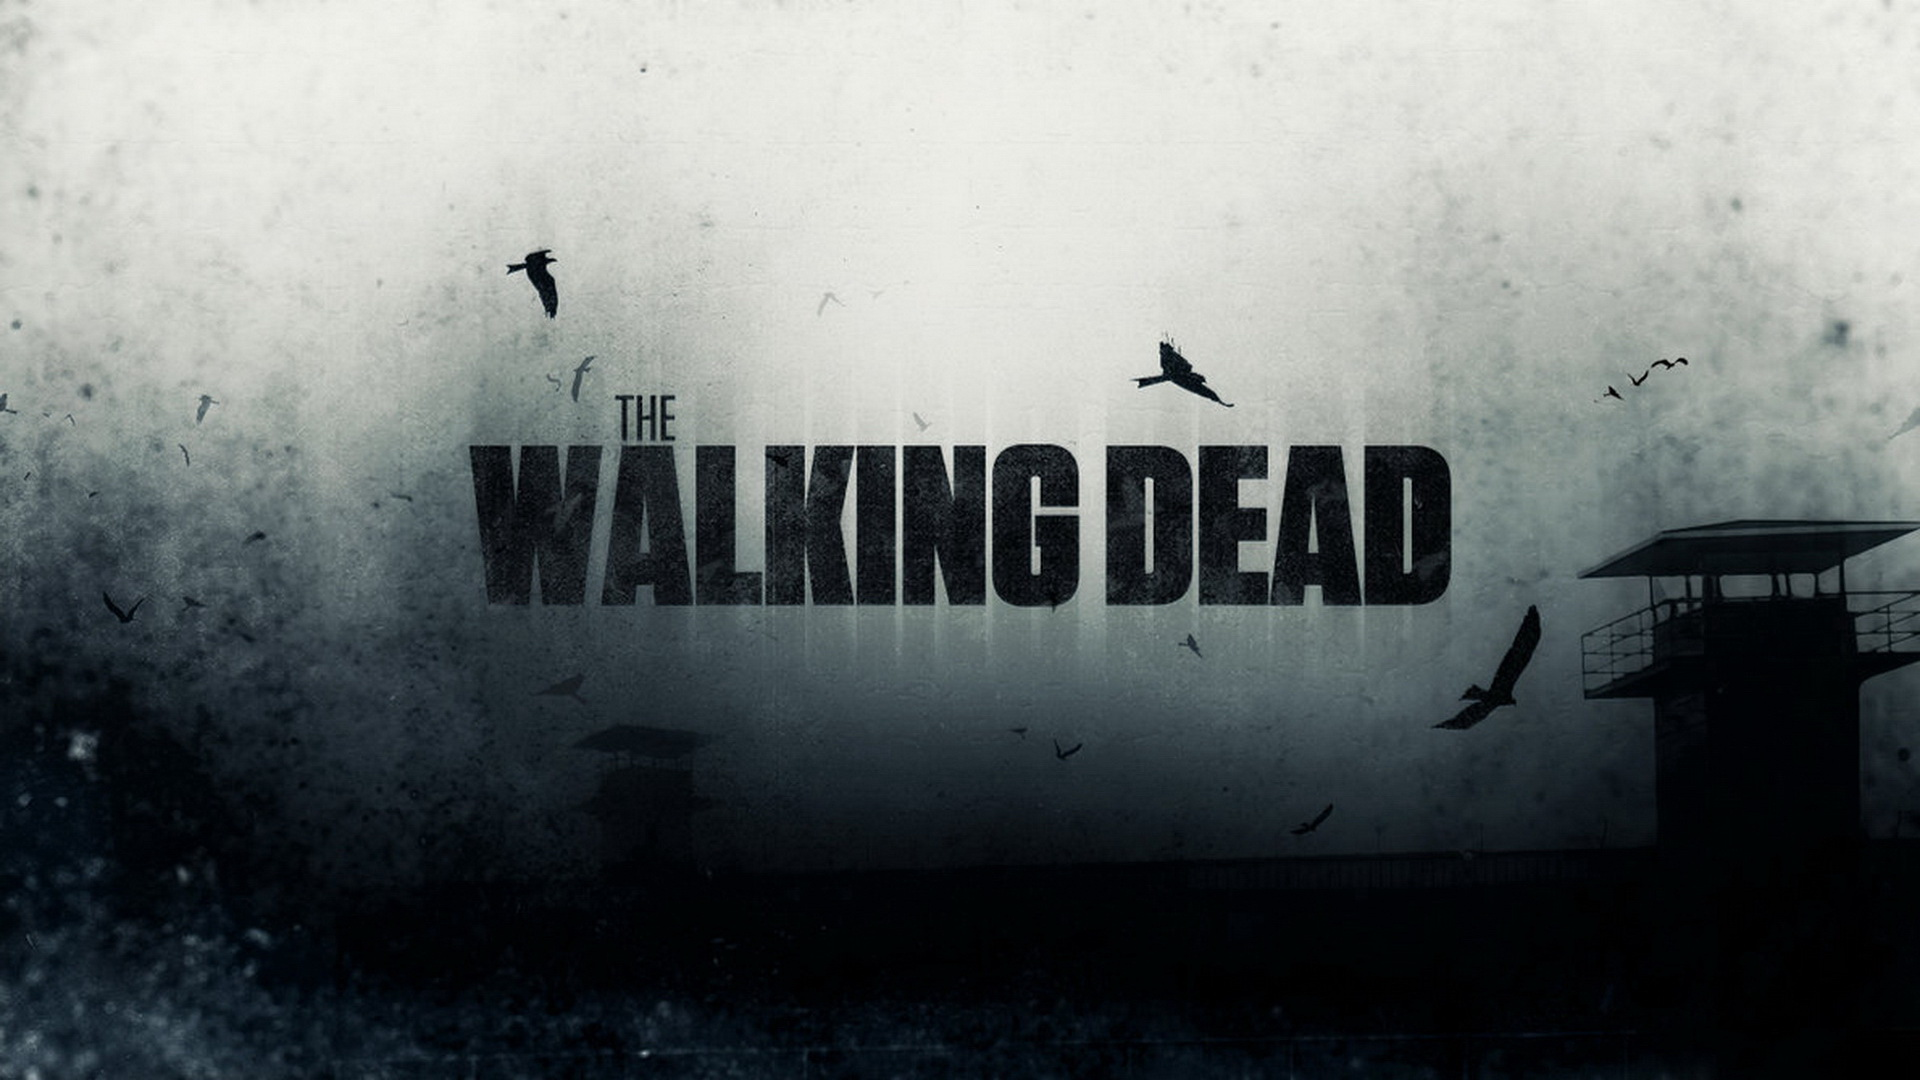 the walking dead season 6 wallpapers full hd pictures